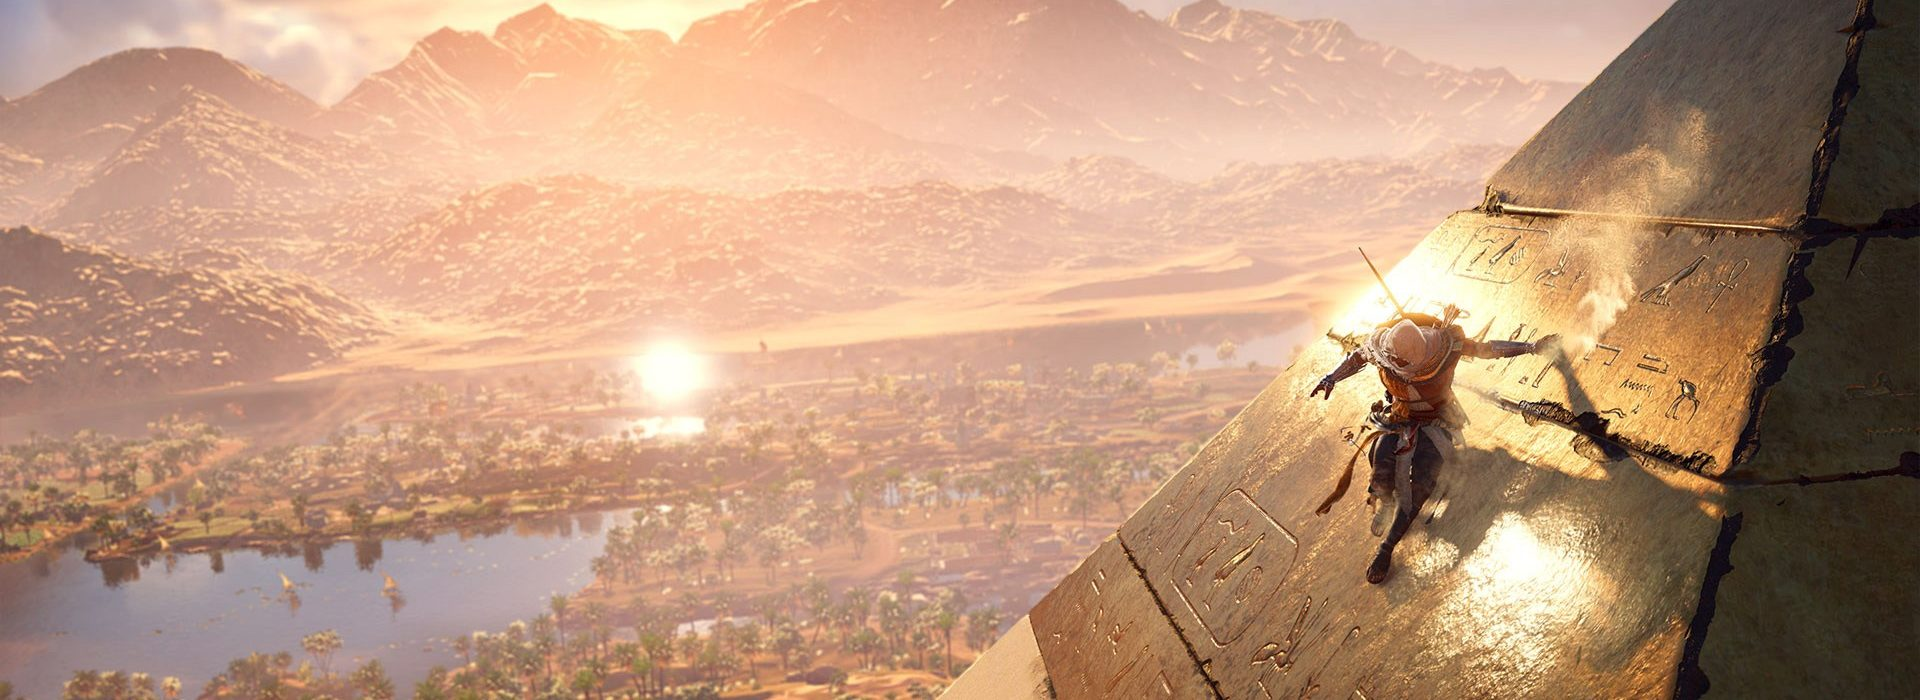 Assassins-Creed-Origins-02-1080-Main